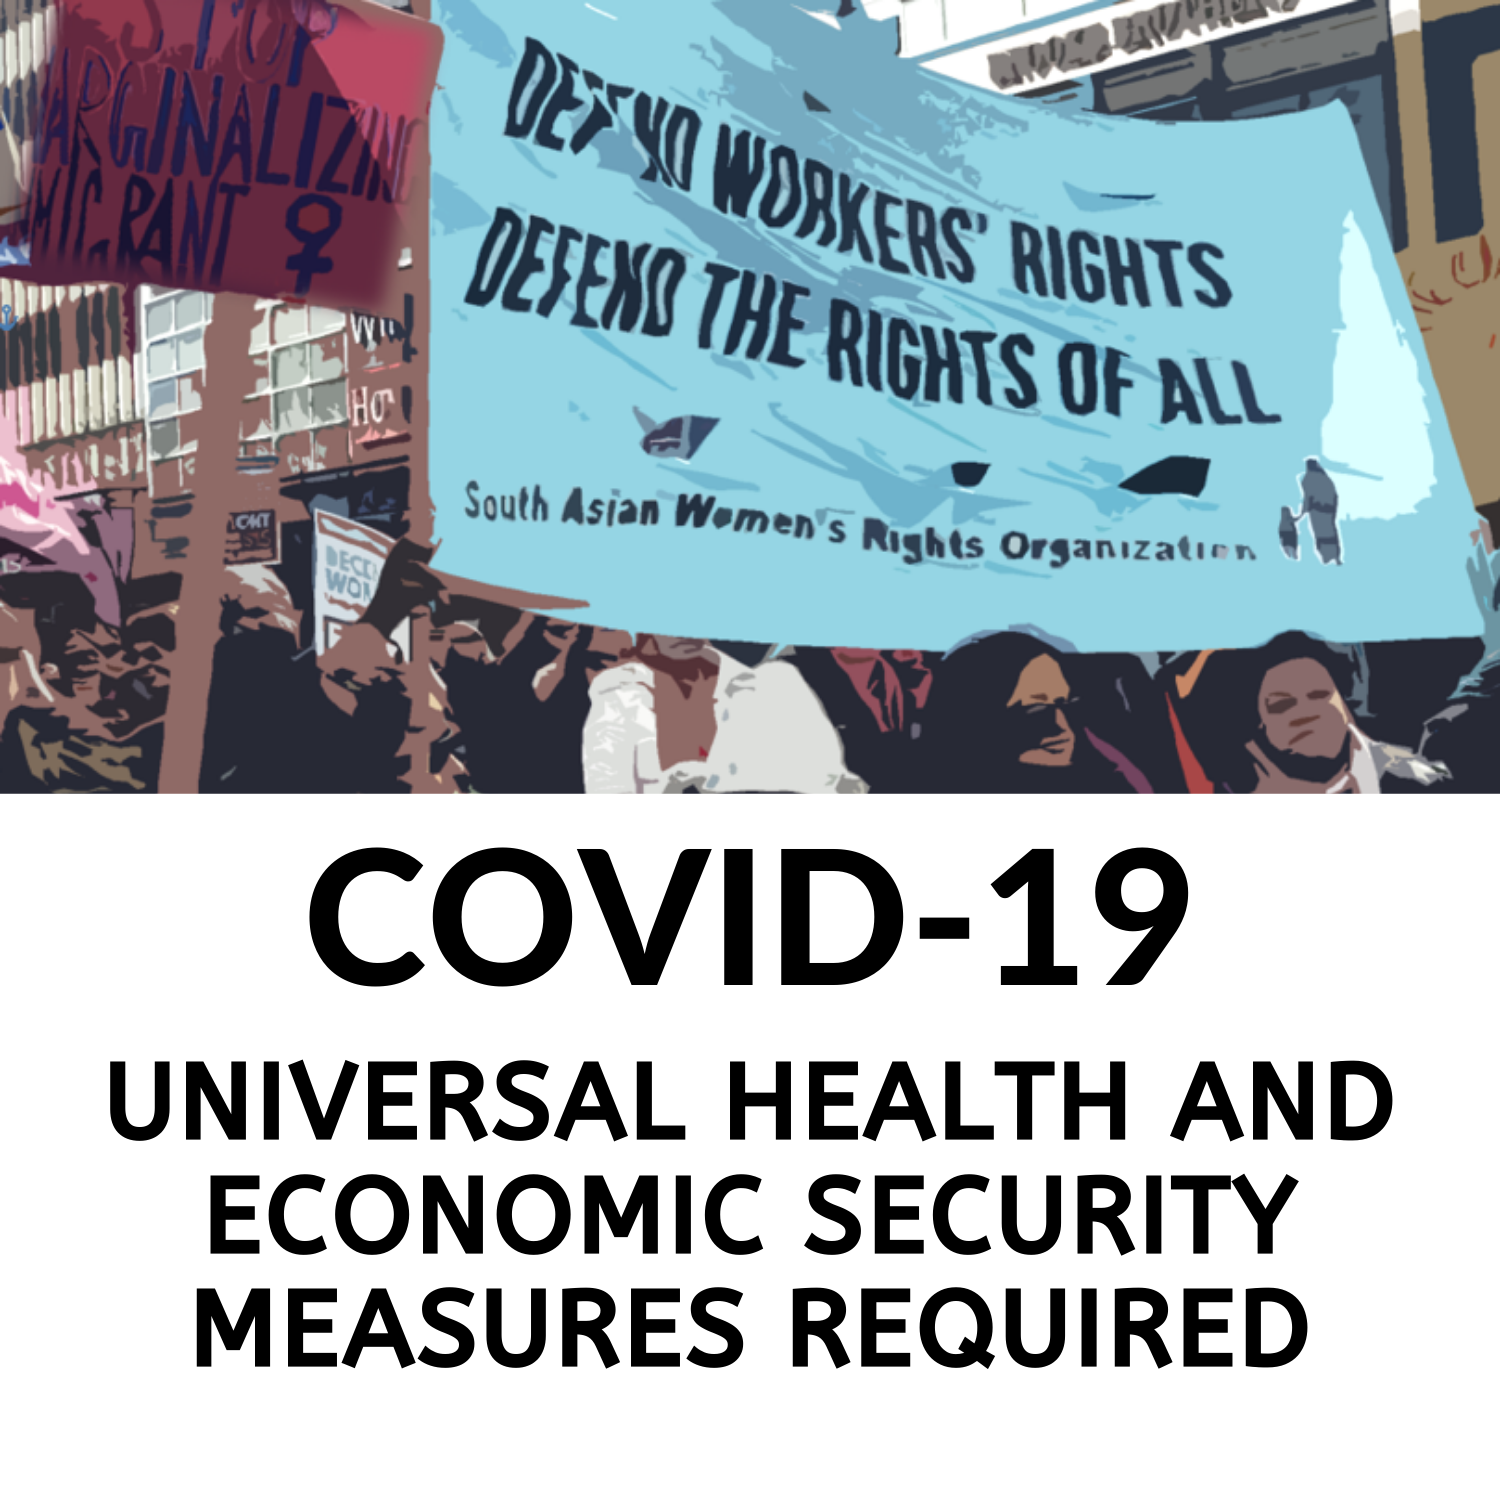 Report: Universal health and economic security measures required!